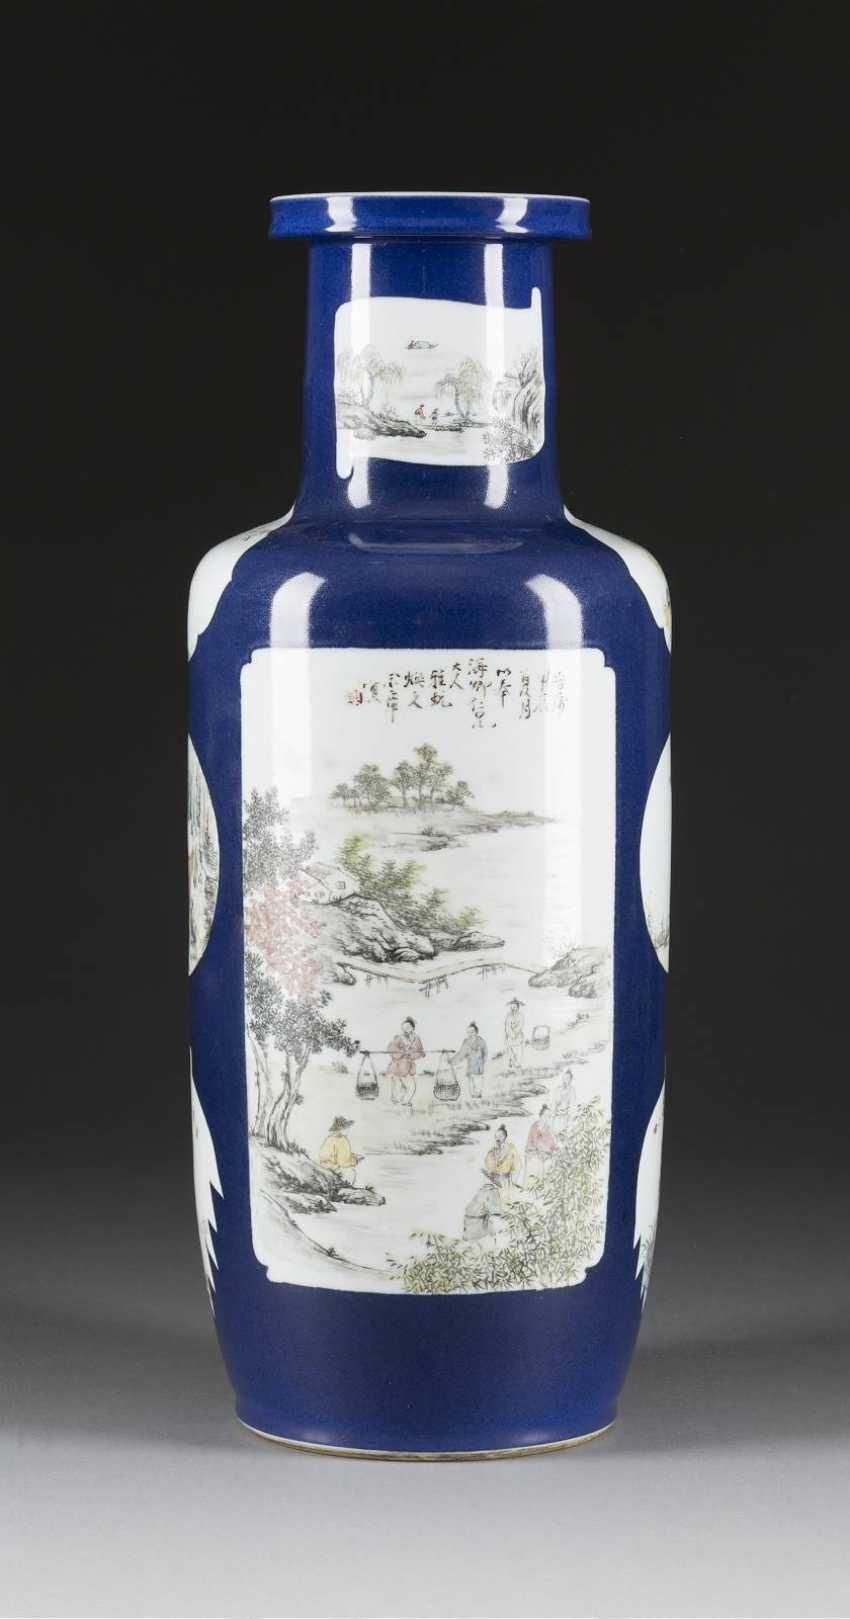 LARGE VASE WITH FIGURAL SCENES - photo 1